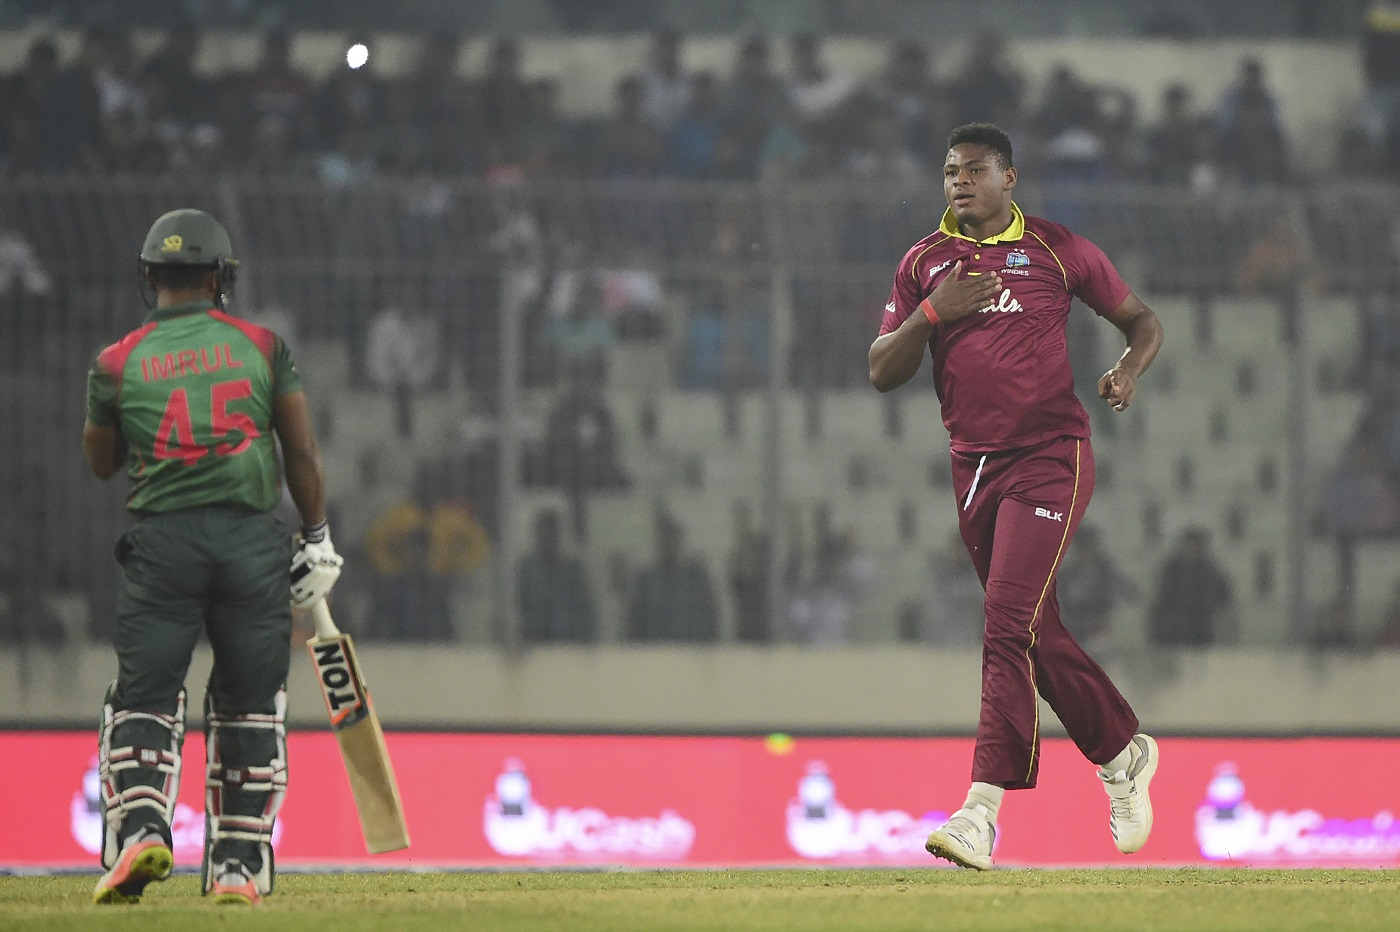 Bangladesh vs Windies Highlights | 1st ODI